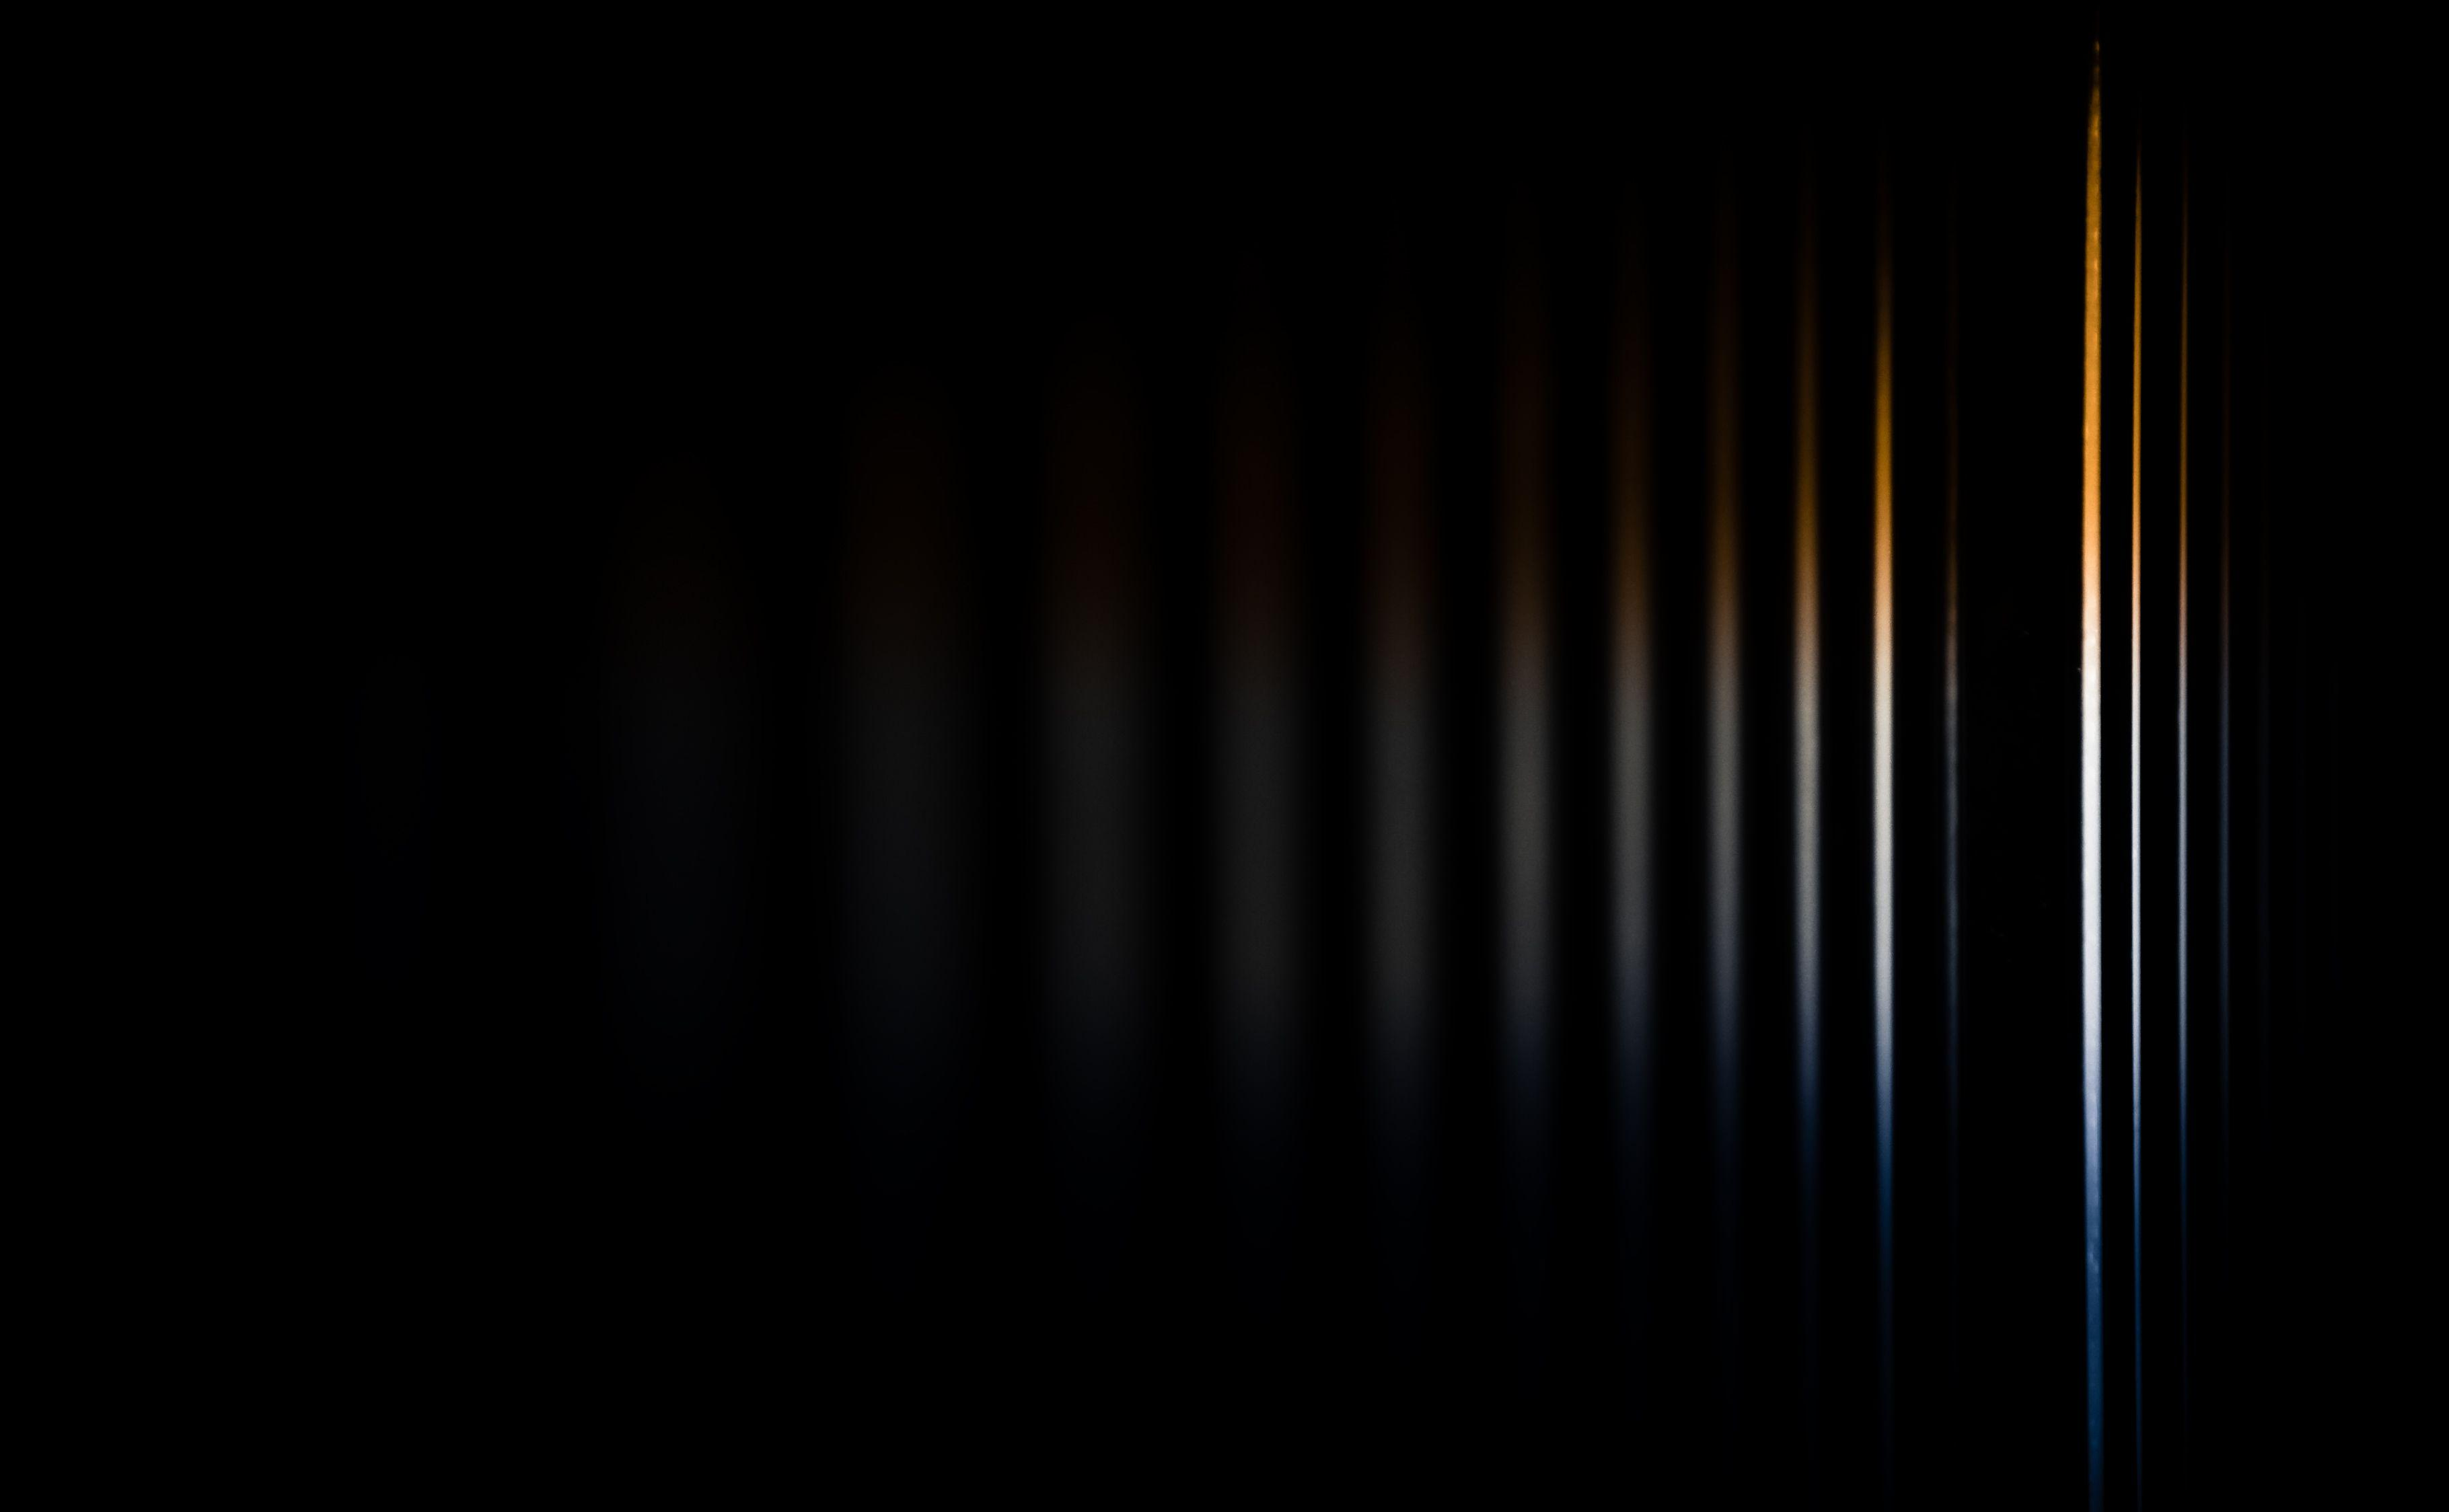 Black Abstract Backgrounds 3640x2248